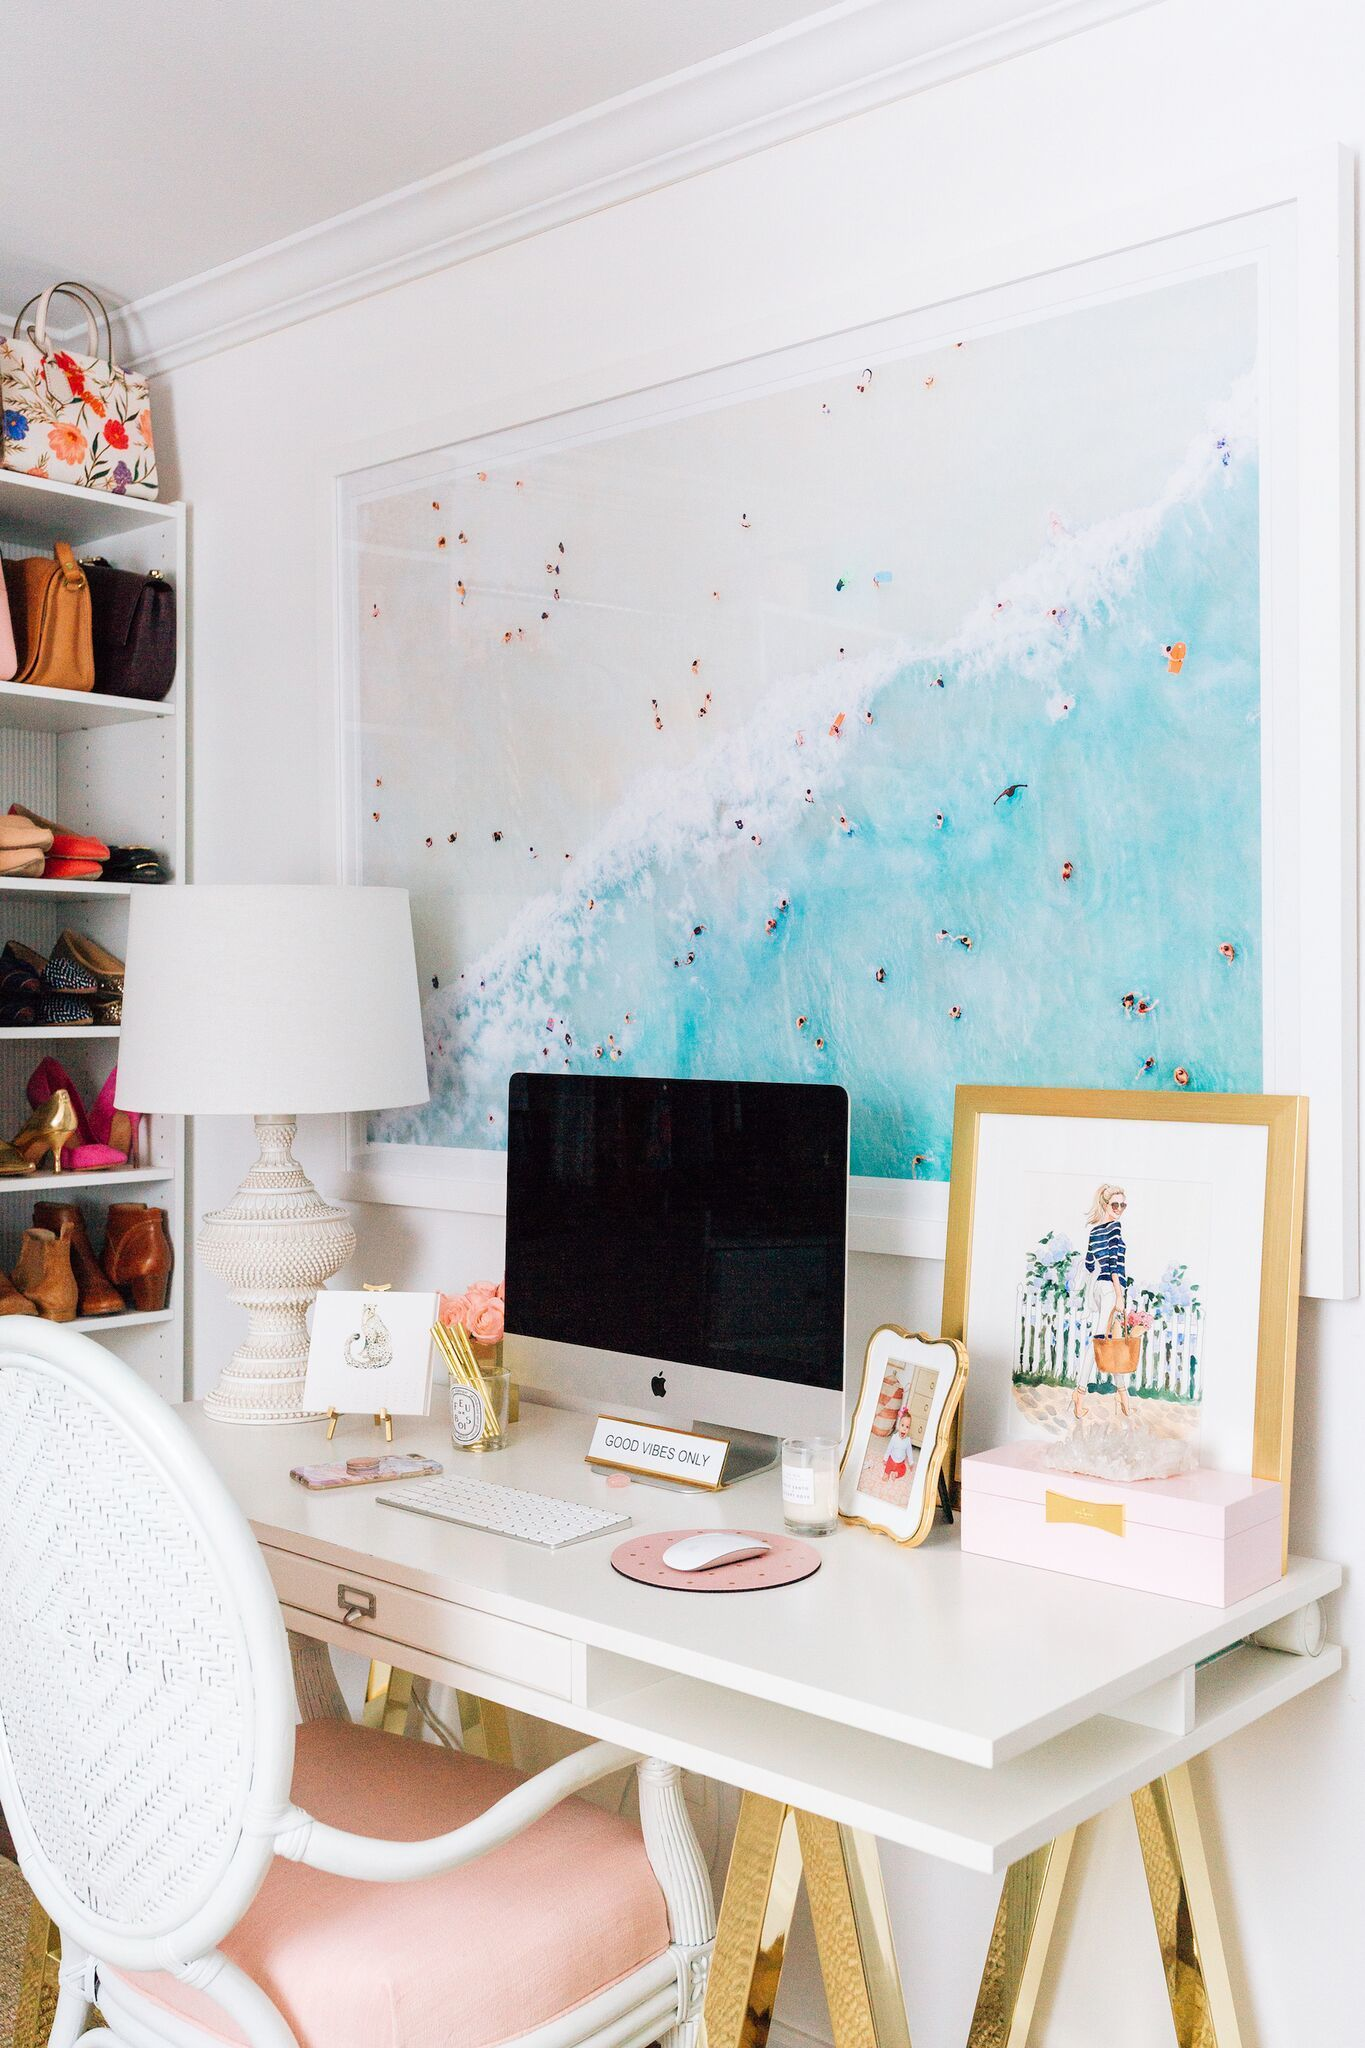 Home/Room Tour: Julia of Lemon Stripe's Beachy Office Vibes -   22 desk decor shelves